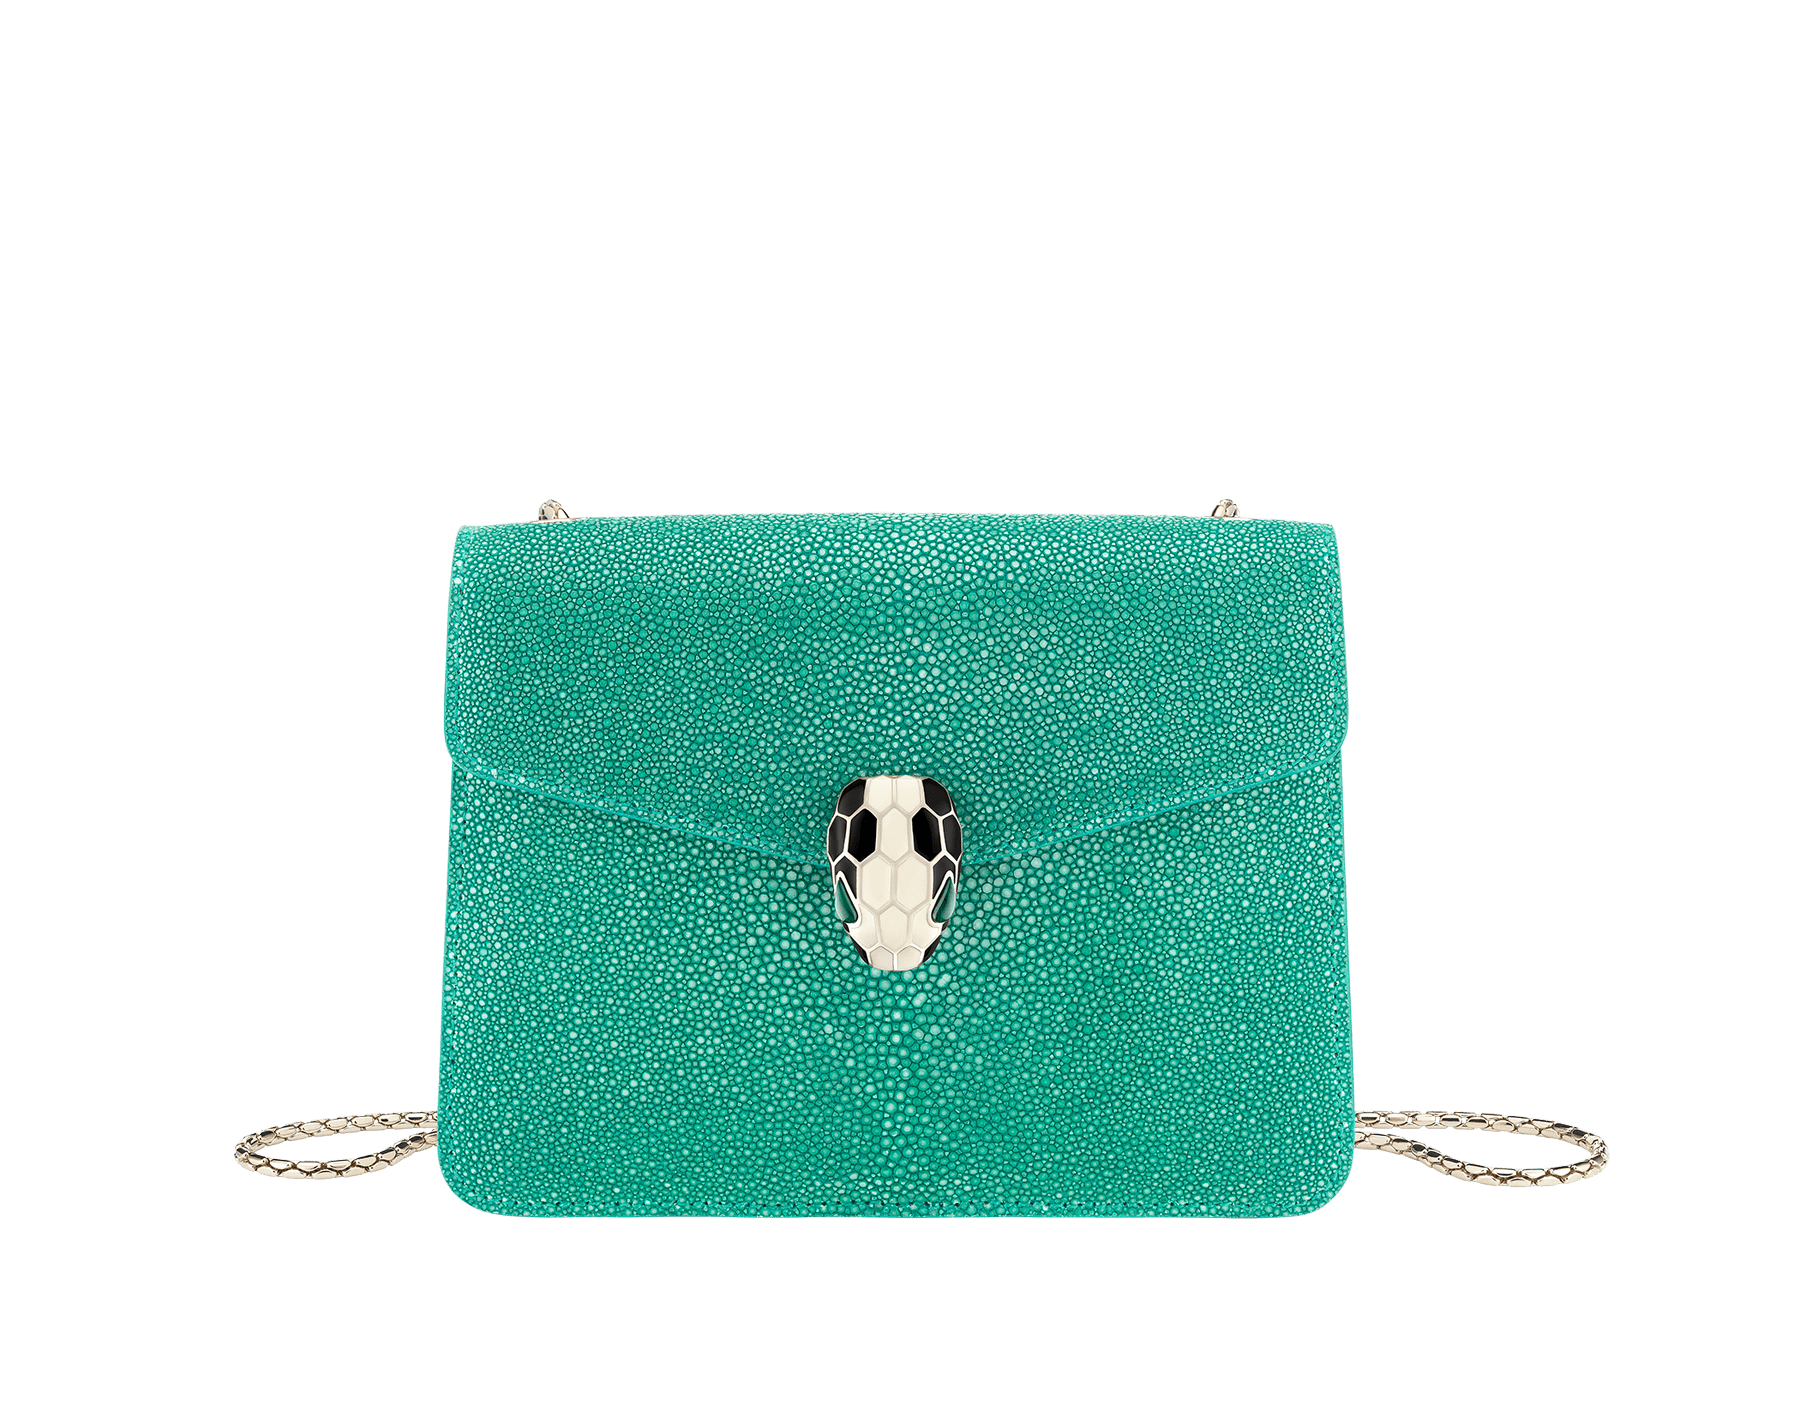 Serpenti Forever crossbody bag in tropical turquoise galuchat skin. Snakehead closure in light gold plated brass decorated with black and white enamel, and green malachite eyes. 288067 image 1